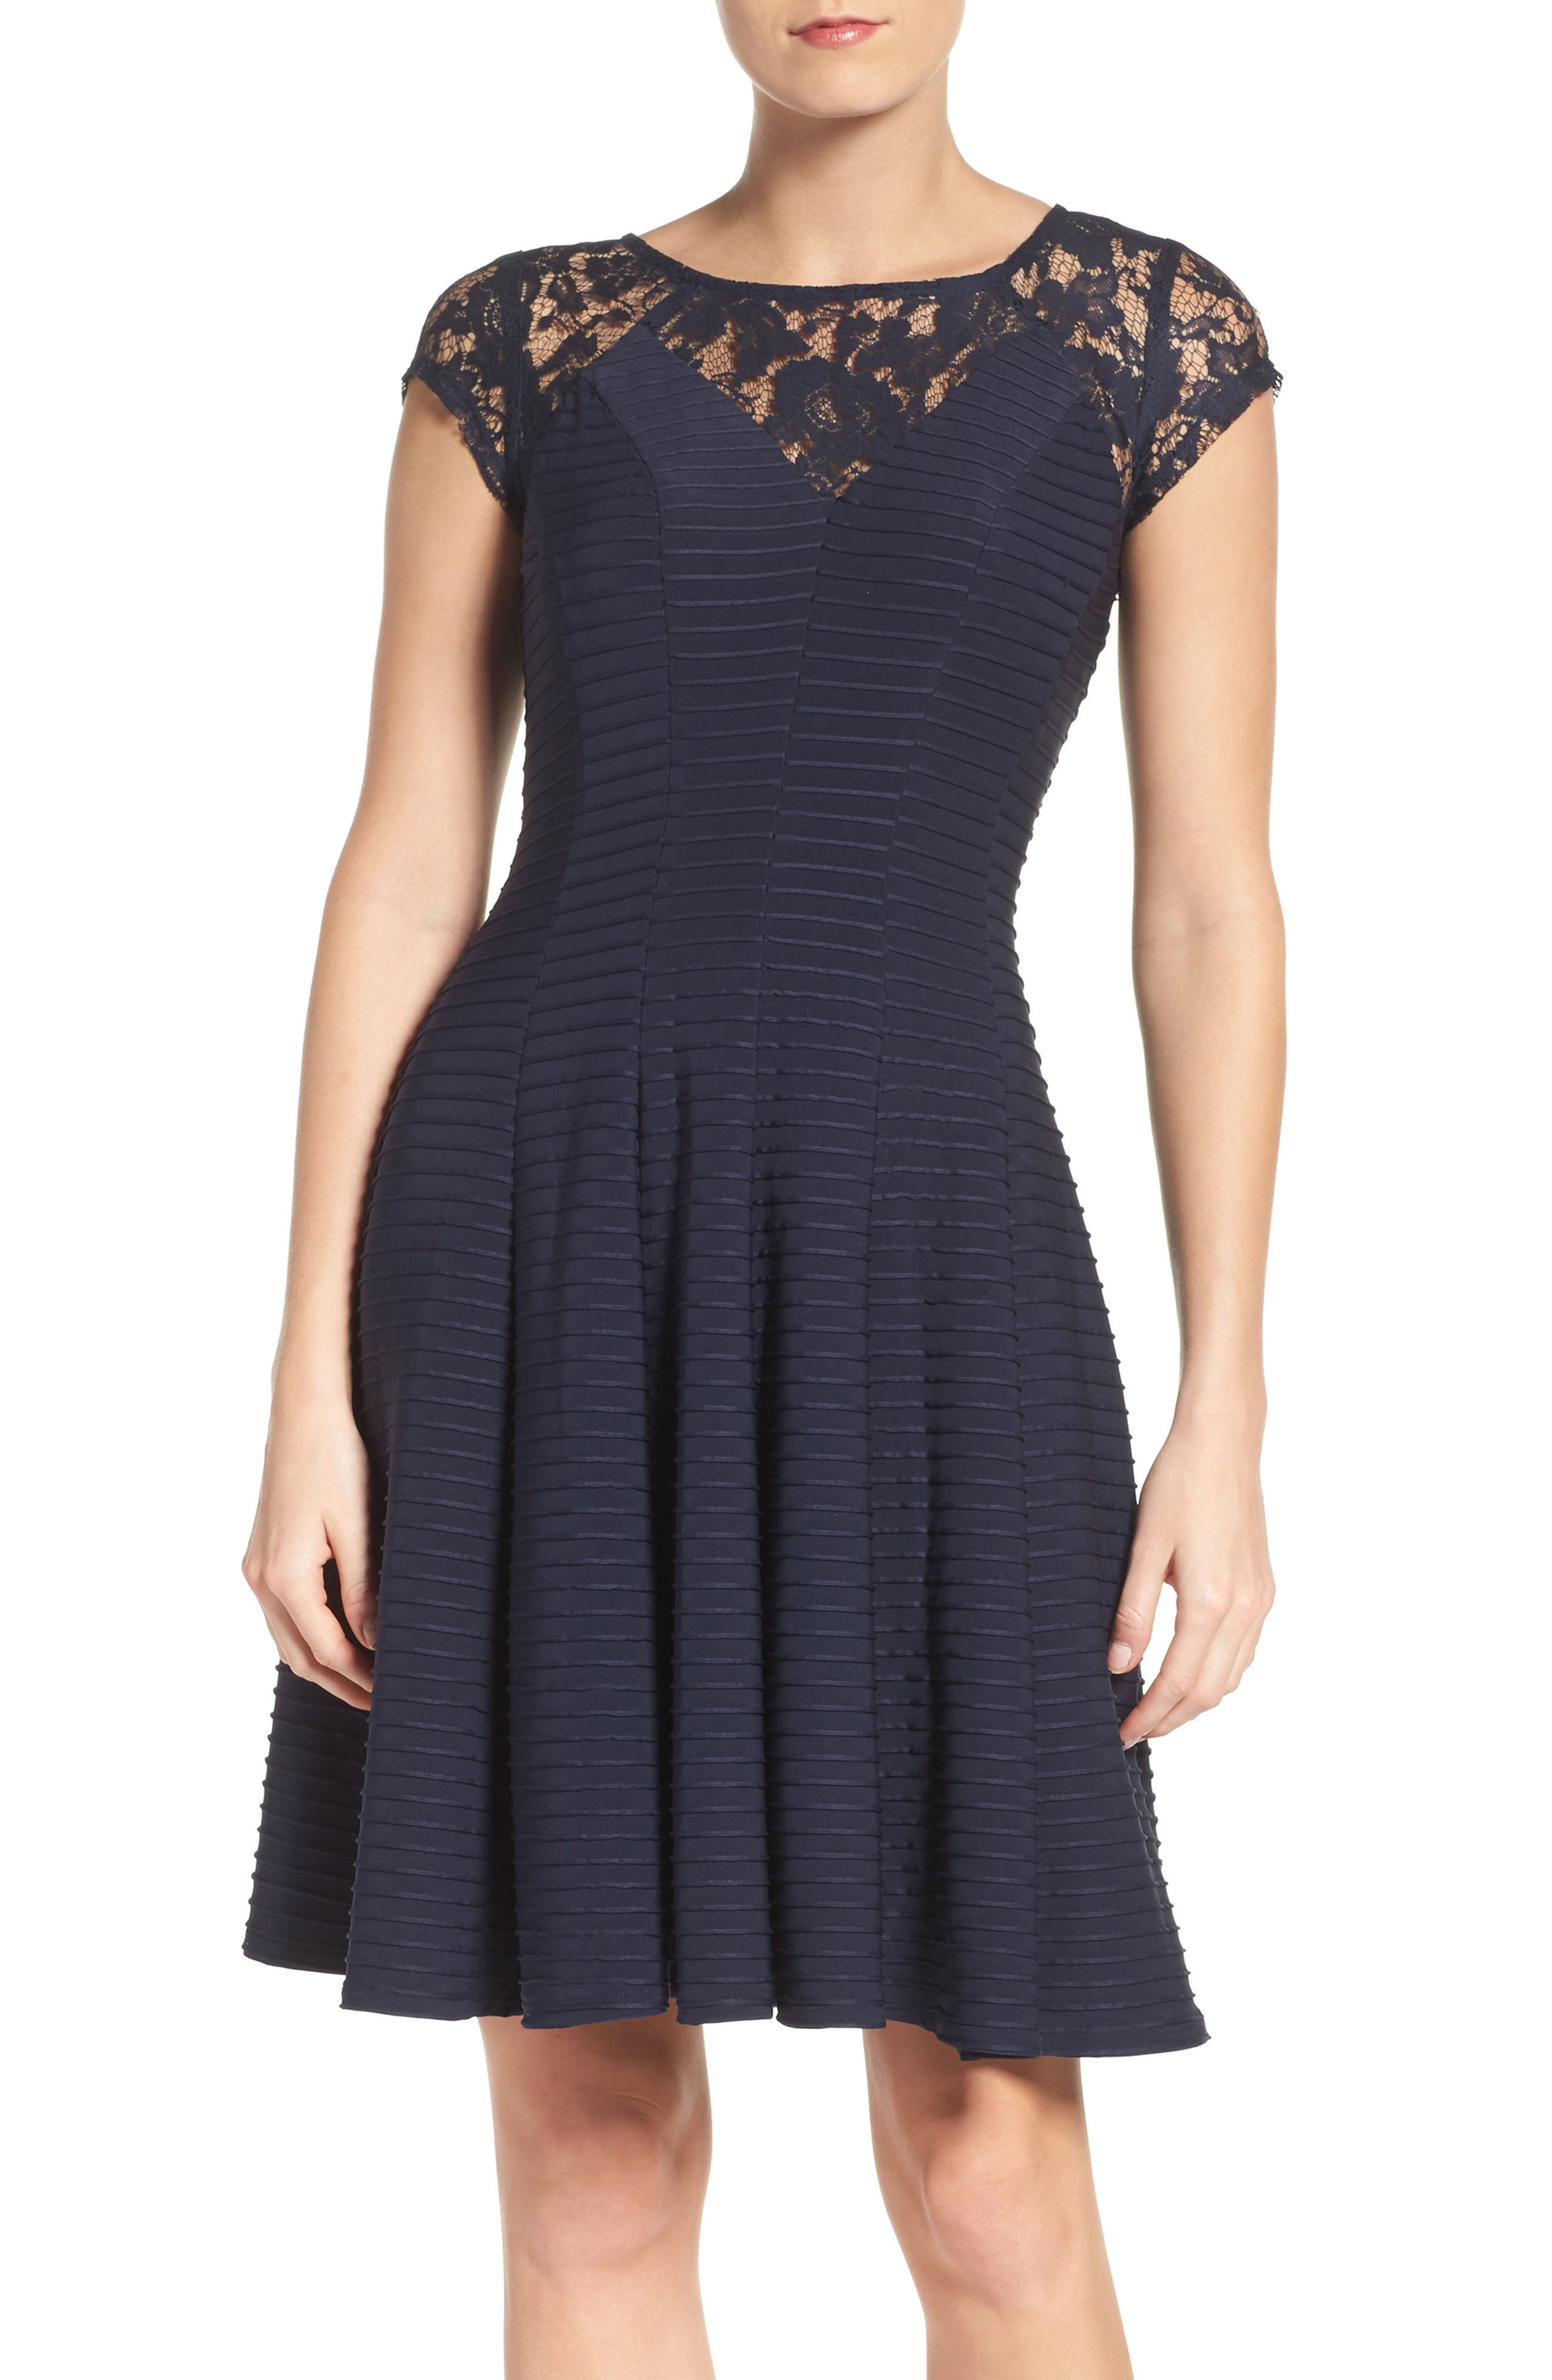 Gabby Skye Lace Fit & Flare Dress